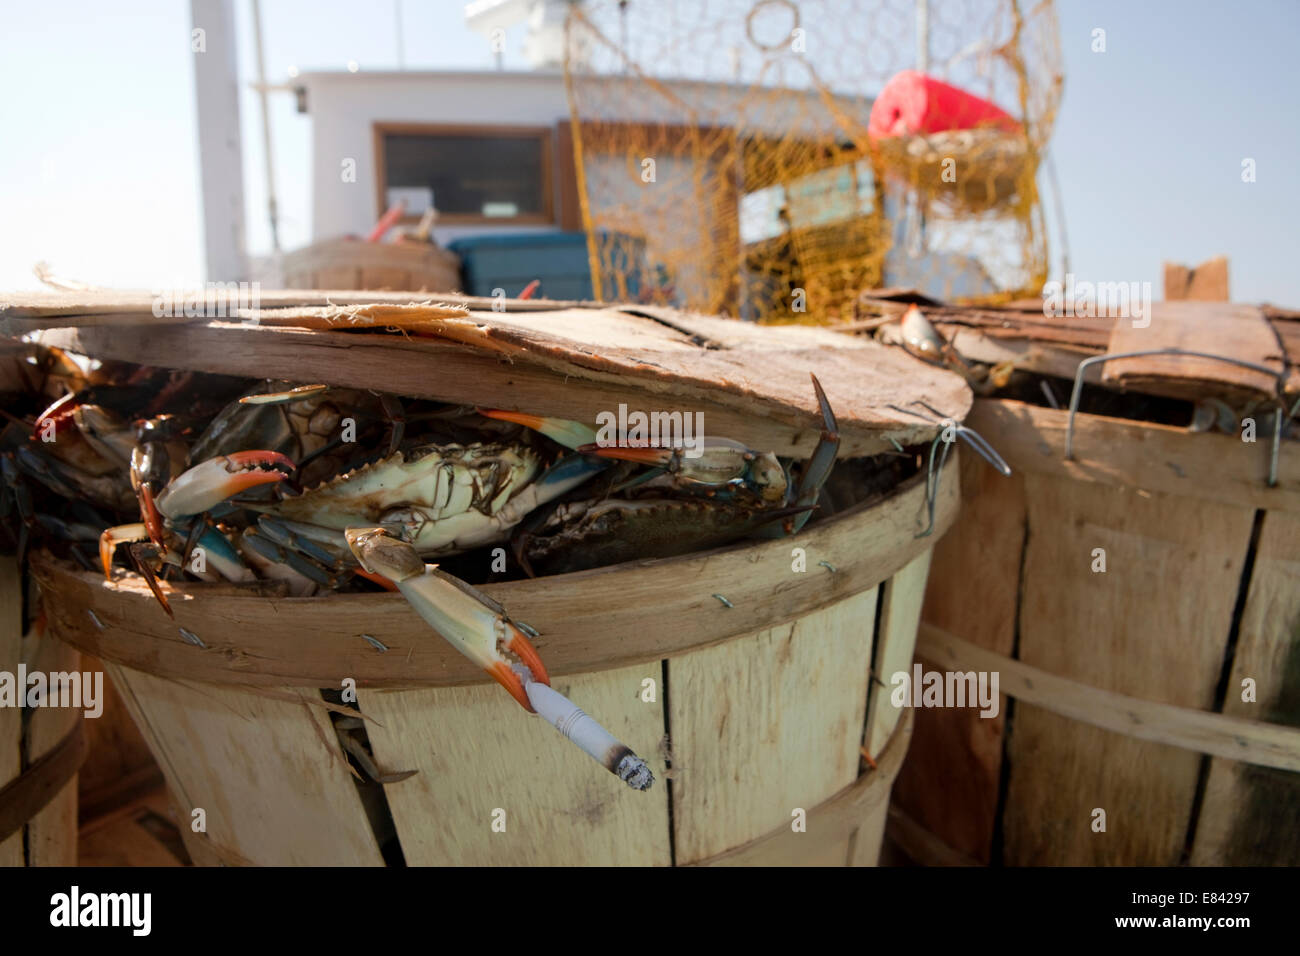 Crab peering from crab bushel on fishing boat holding cigarette in pincer, Chesapeake Bay, Maryland, USA - Stock Image